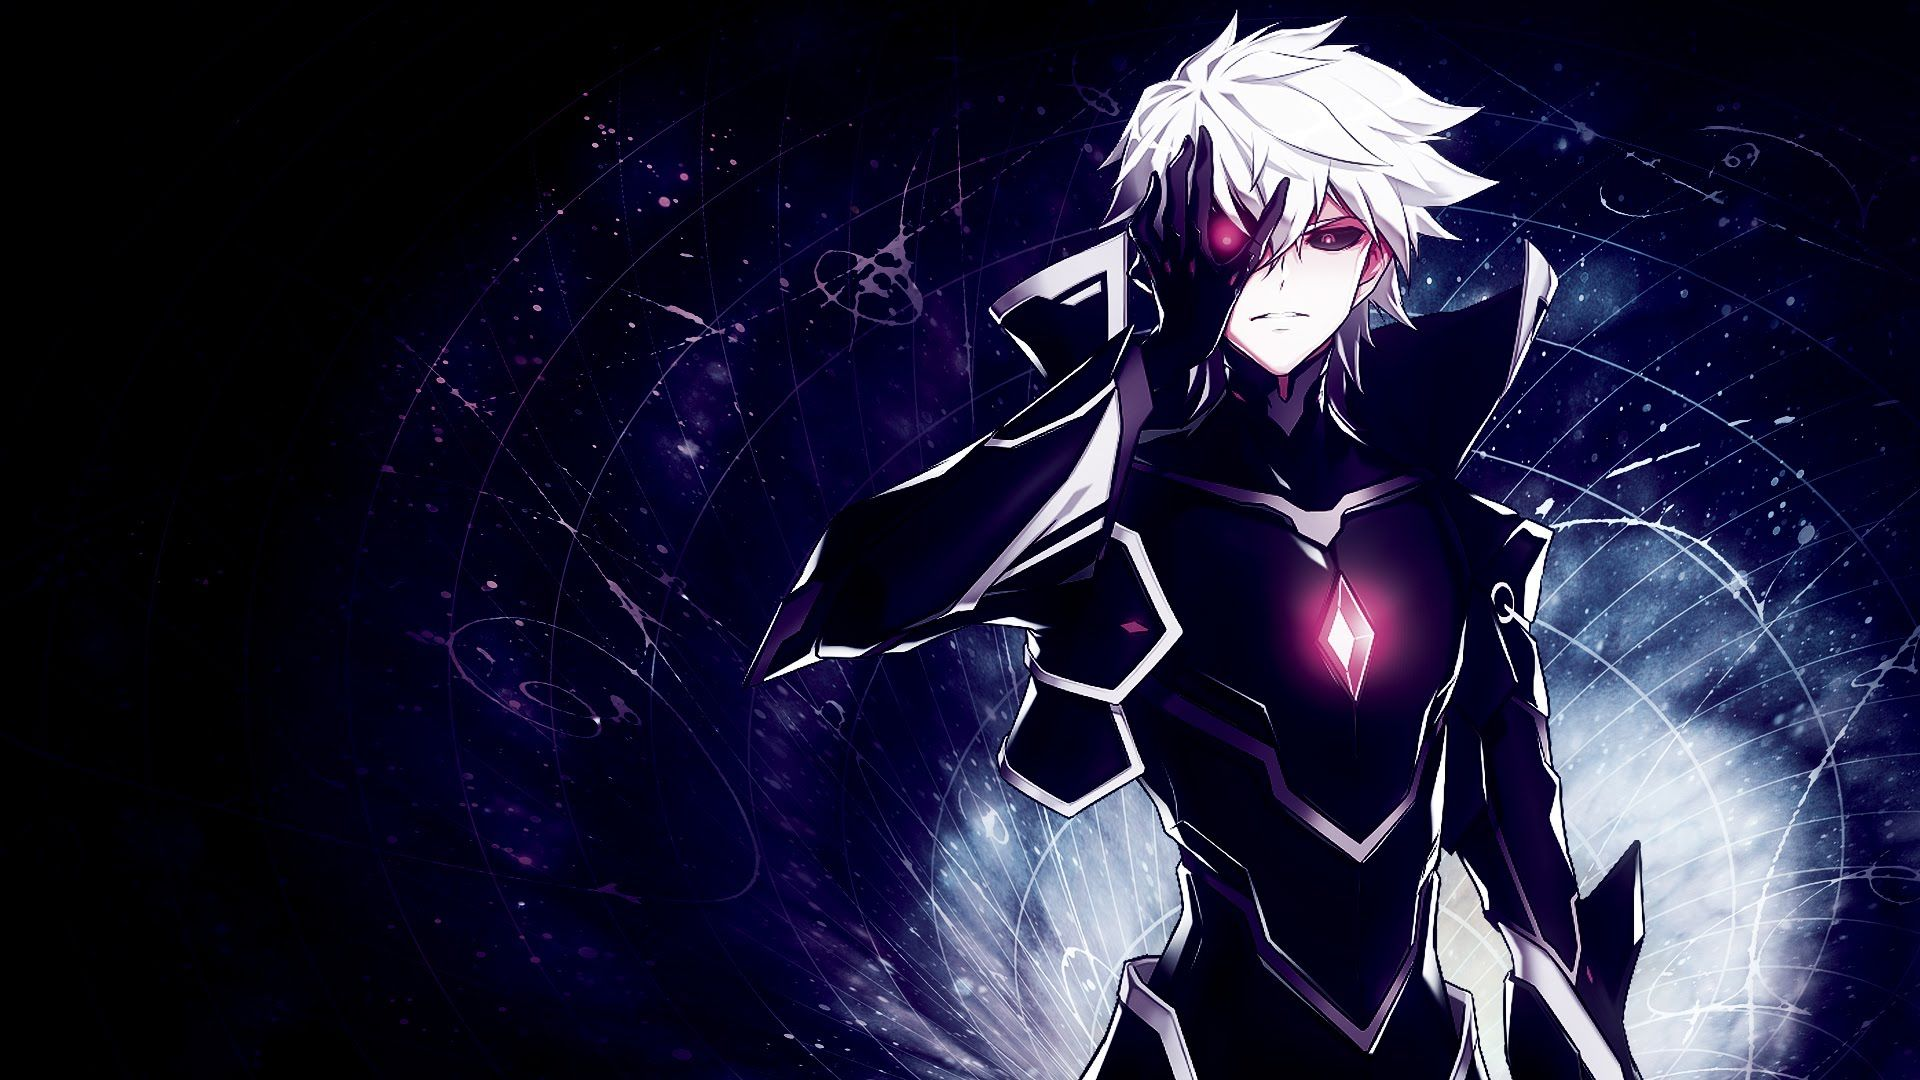 Epic Anime Fighting Wallpaper Picture Elsword, Elsword